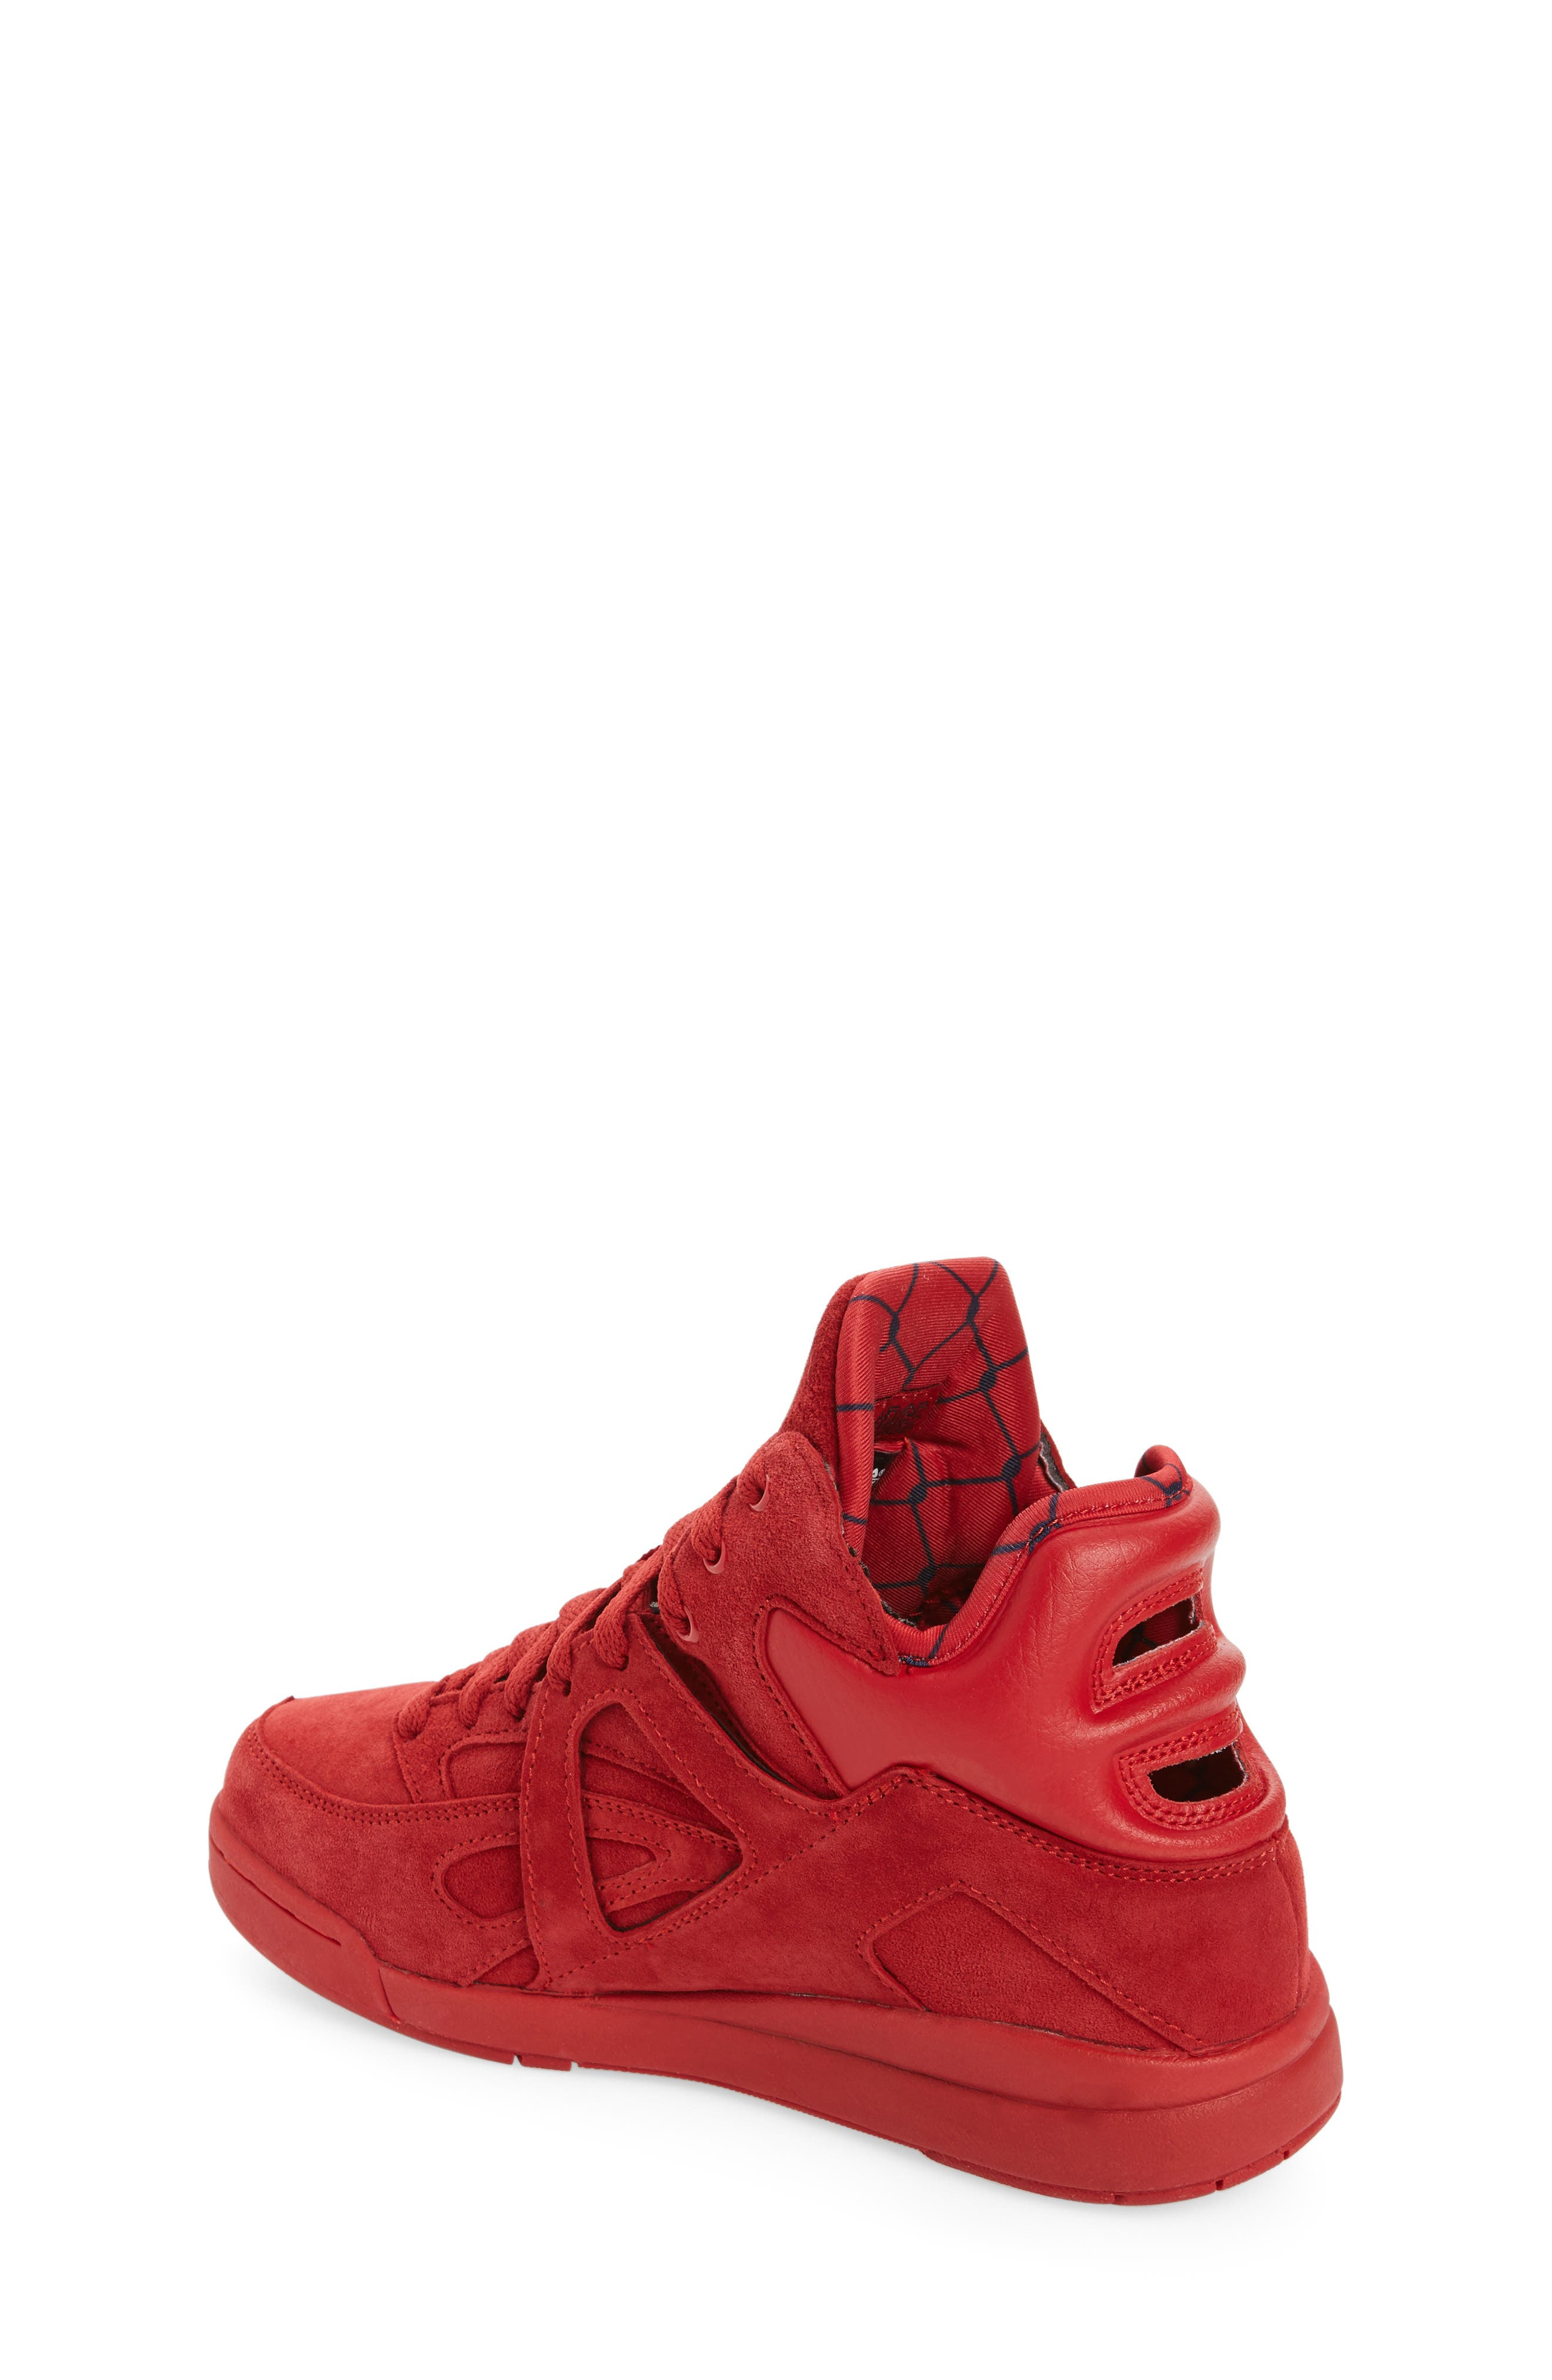 The Cage High Top Sneaker,                             Alternate thumbnail 2, color,                             RED SUEDE